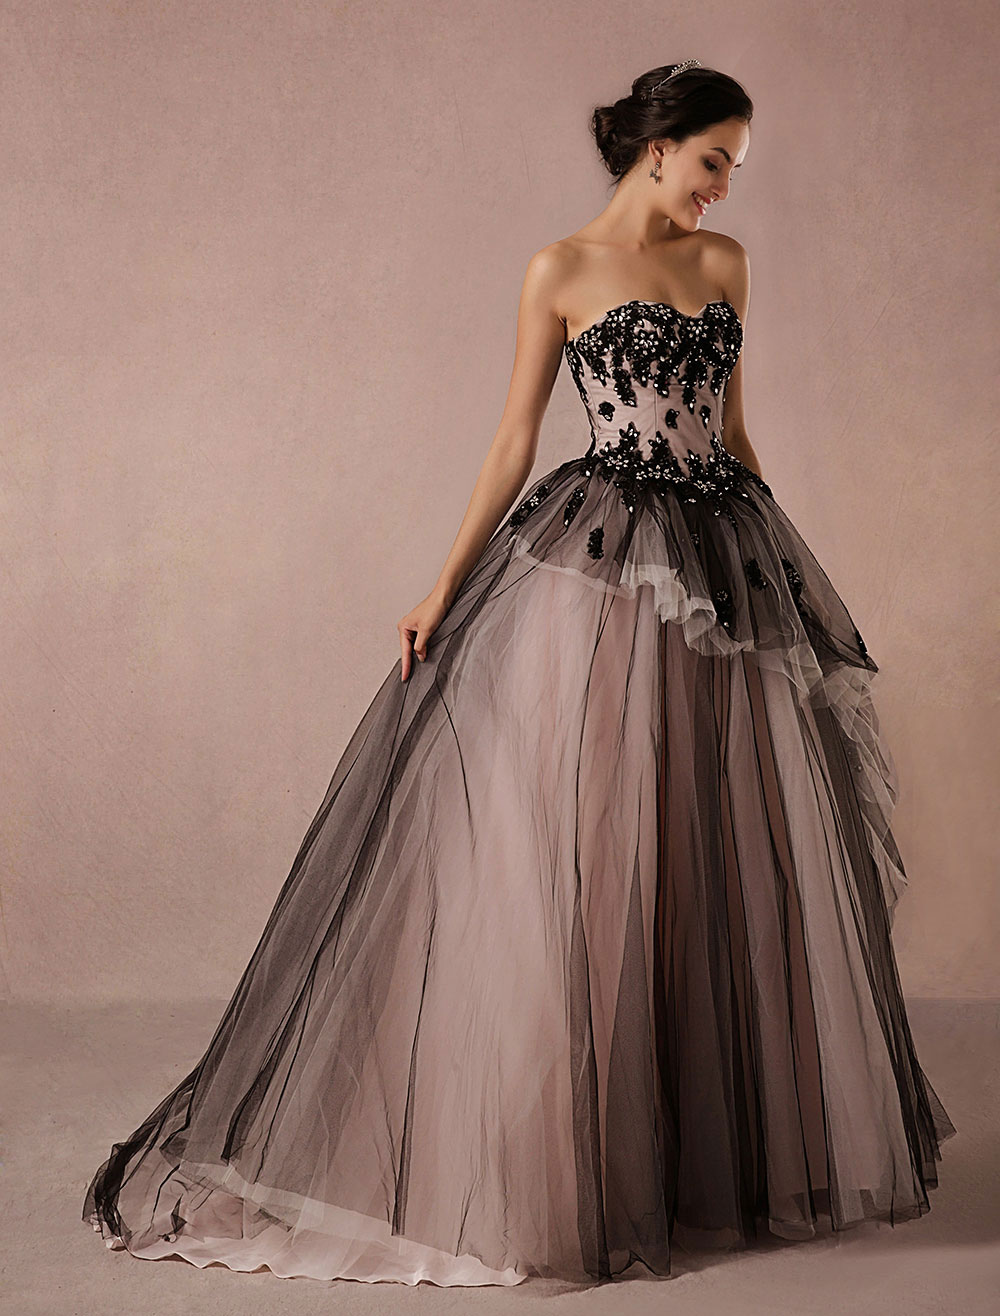 eagle Wash windows exciting  Matrimonio Nero Tulle cappella treno abito da sposa senza spalline  Sweetheart a-line Principessa di lusso Pageant vestito pizzo - Milanoo.com